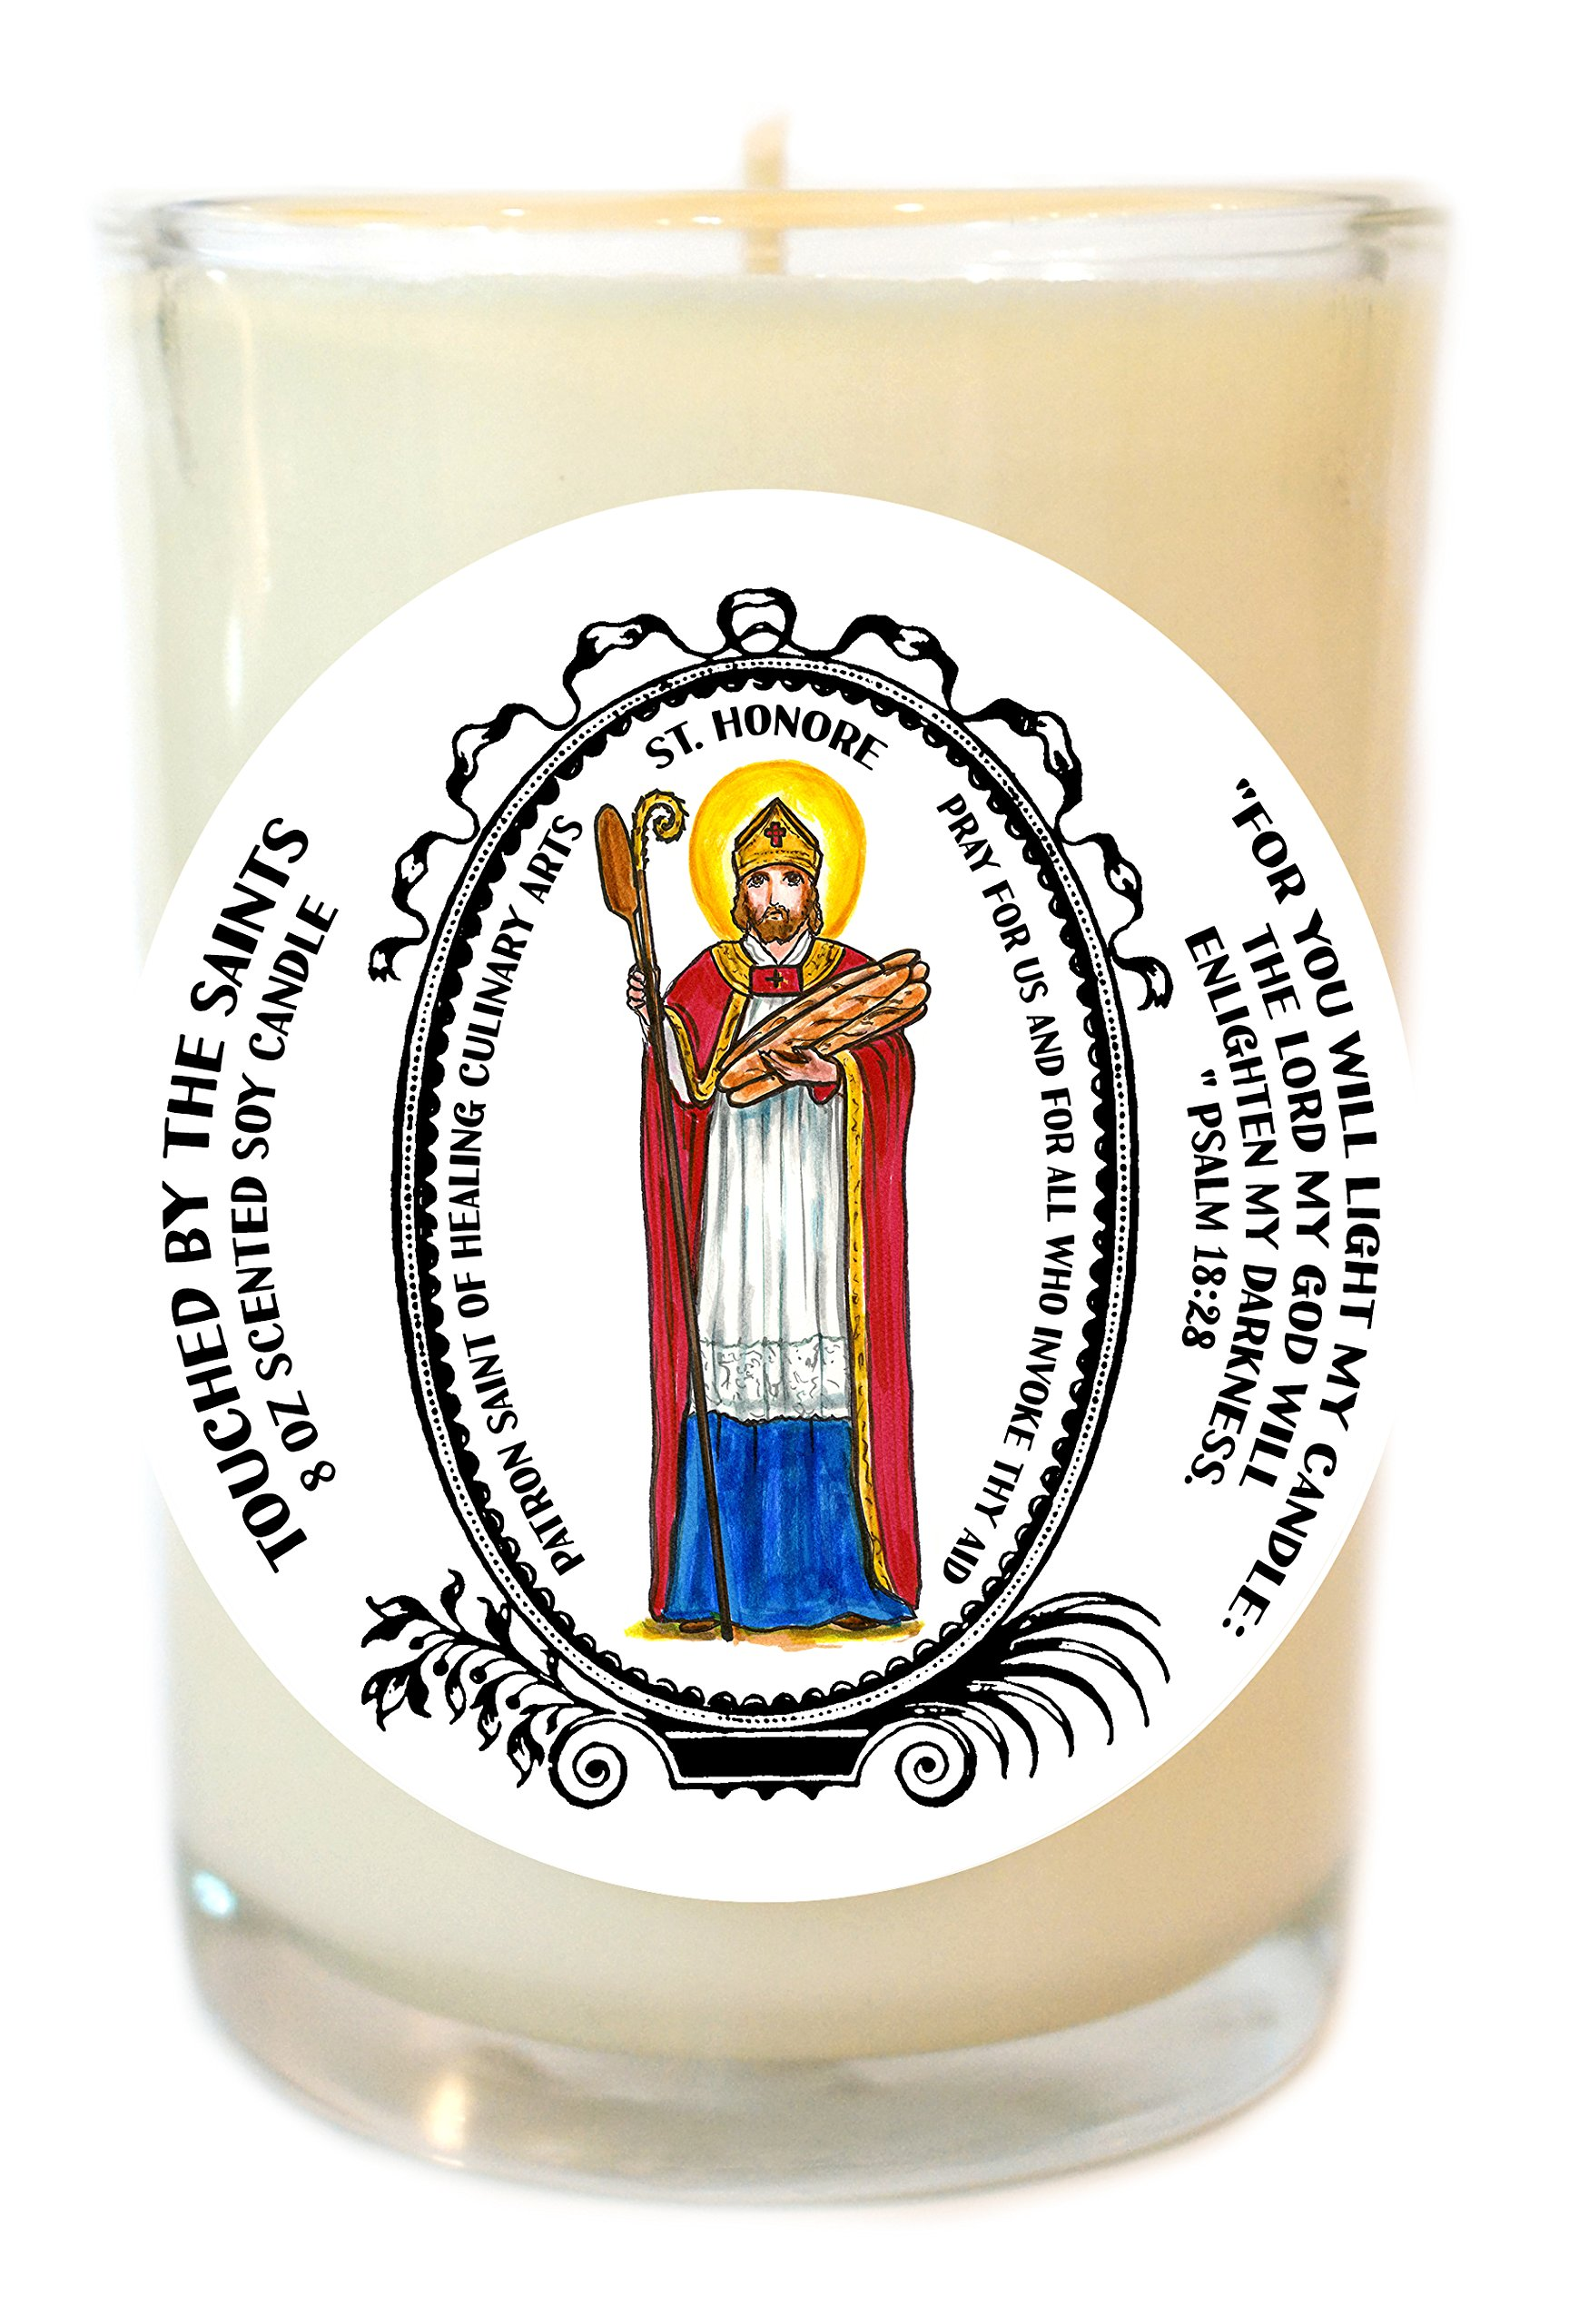 Saint Honore Patron of Healing Culinary Arts 8 Oz Scented Soy Prayer Candle